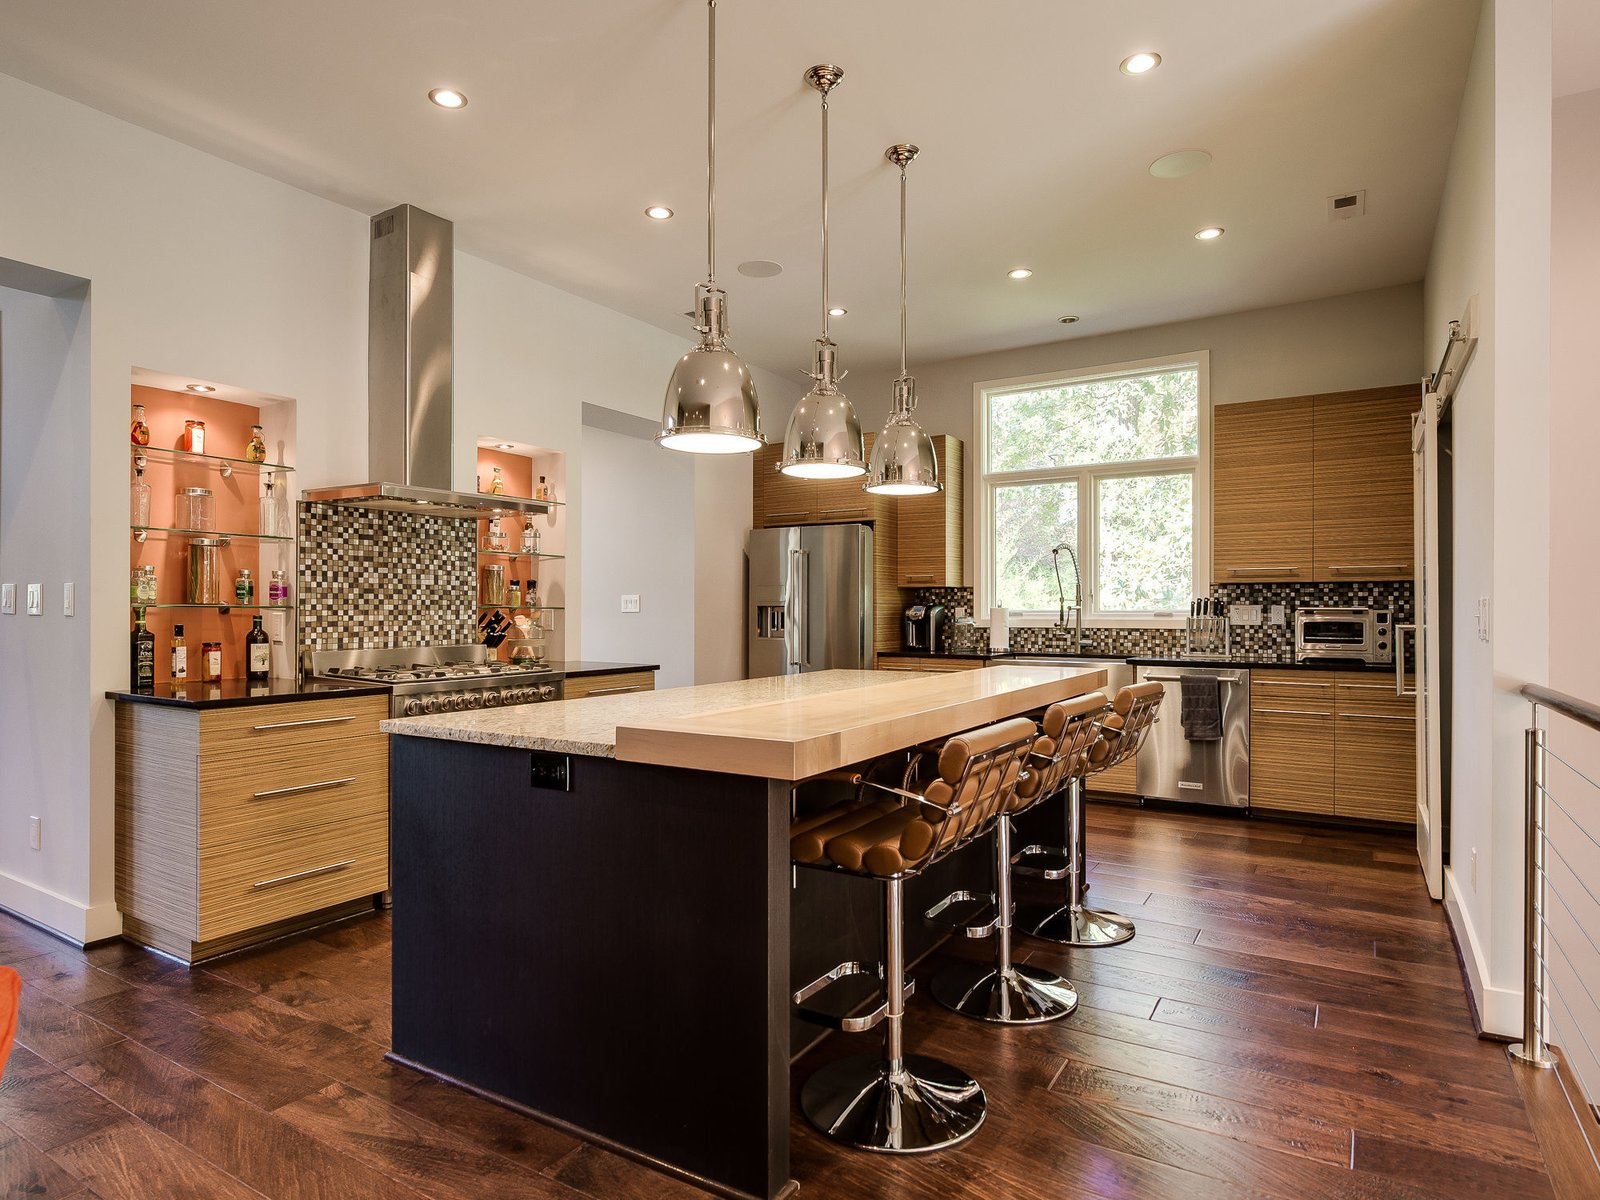 Custom Treefrog wood cabinets and quartz countertops outfit the kitchen, where a granite island with a built-in butcher block transitions into bar seating. Benson Pendants by Restoration Hardware hang above. Another frosted glass barn door leads to a walk-in pantry.  Photo 6 of 11 in Move Into This Midcentury Modern Revival in North Carolina For $1.2M